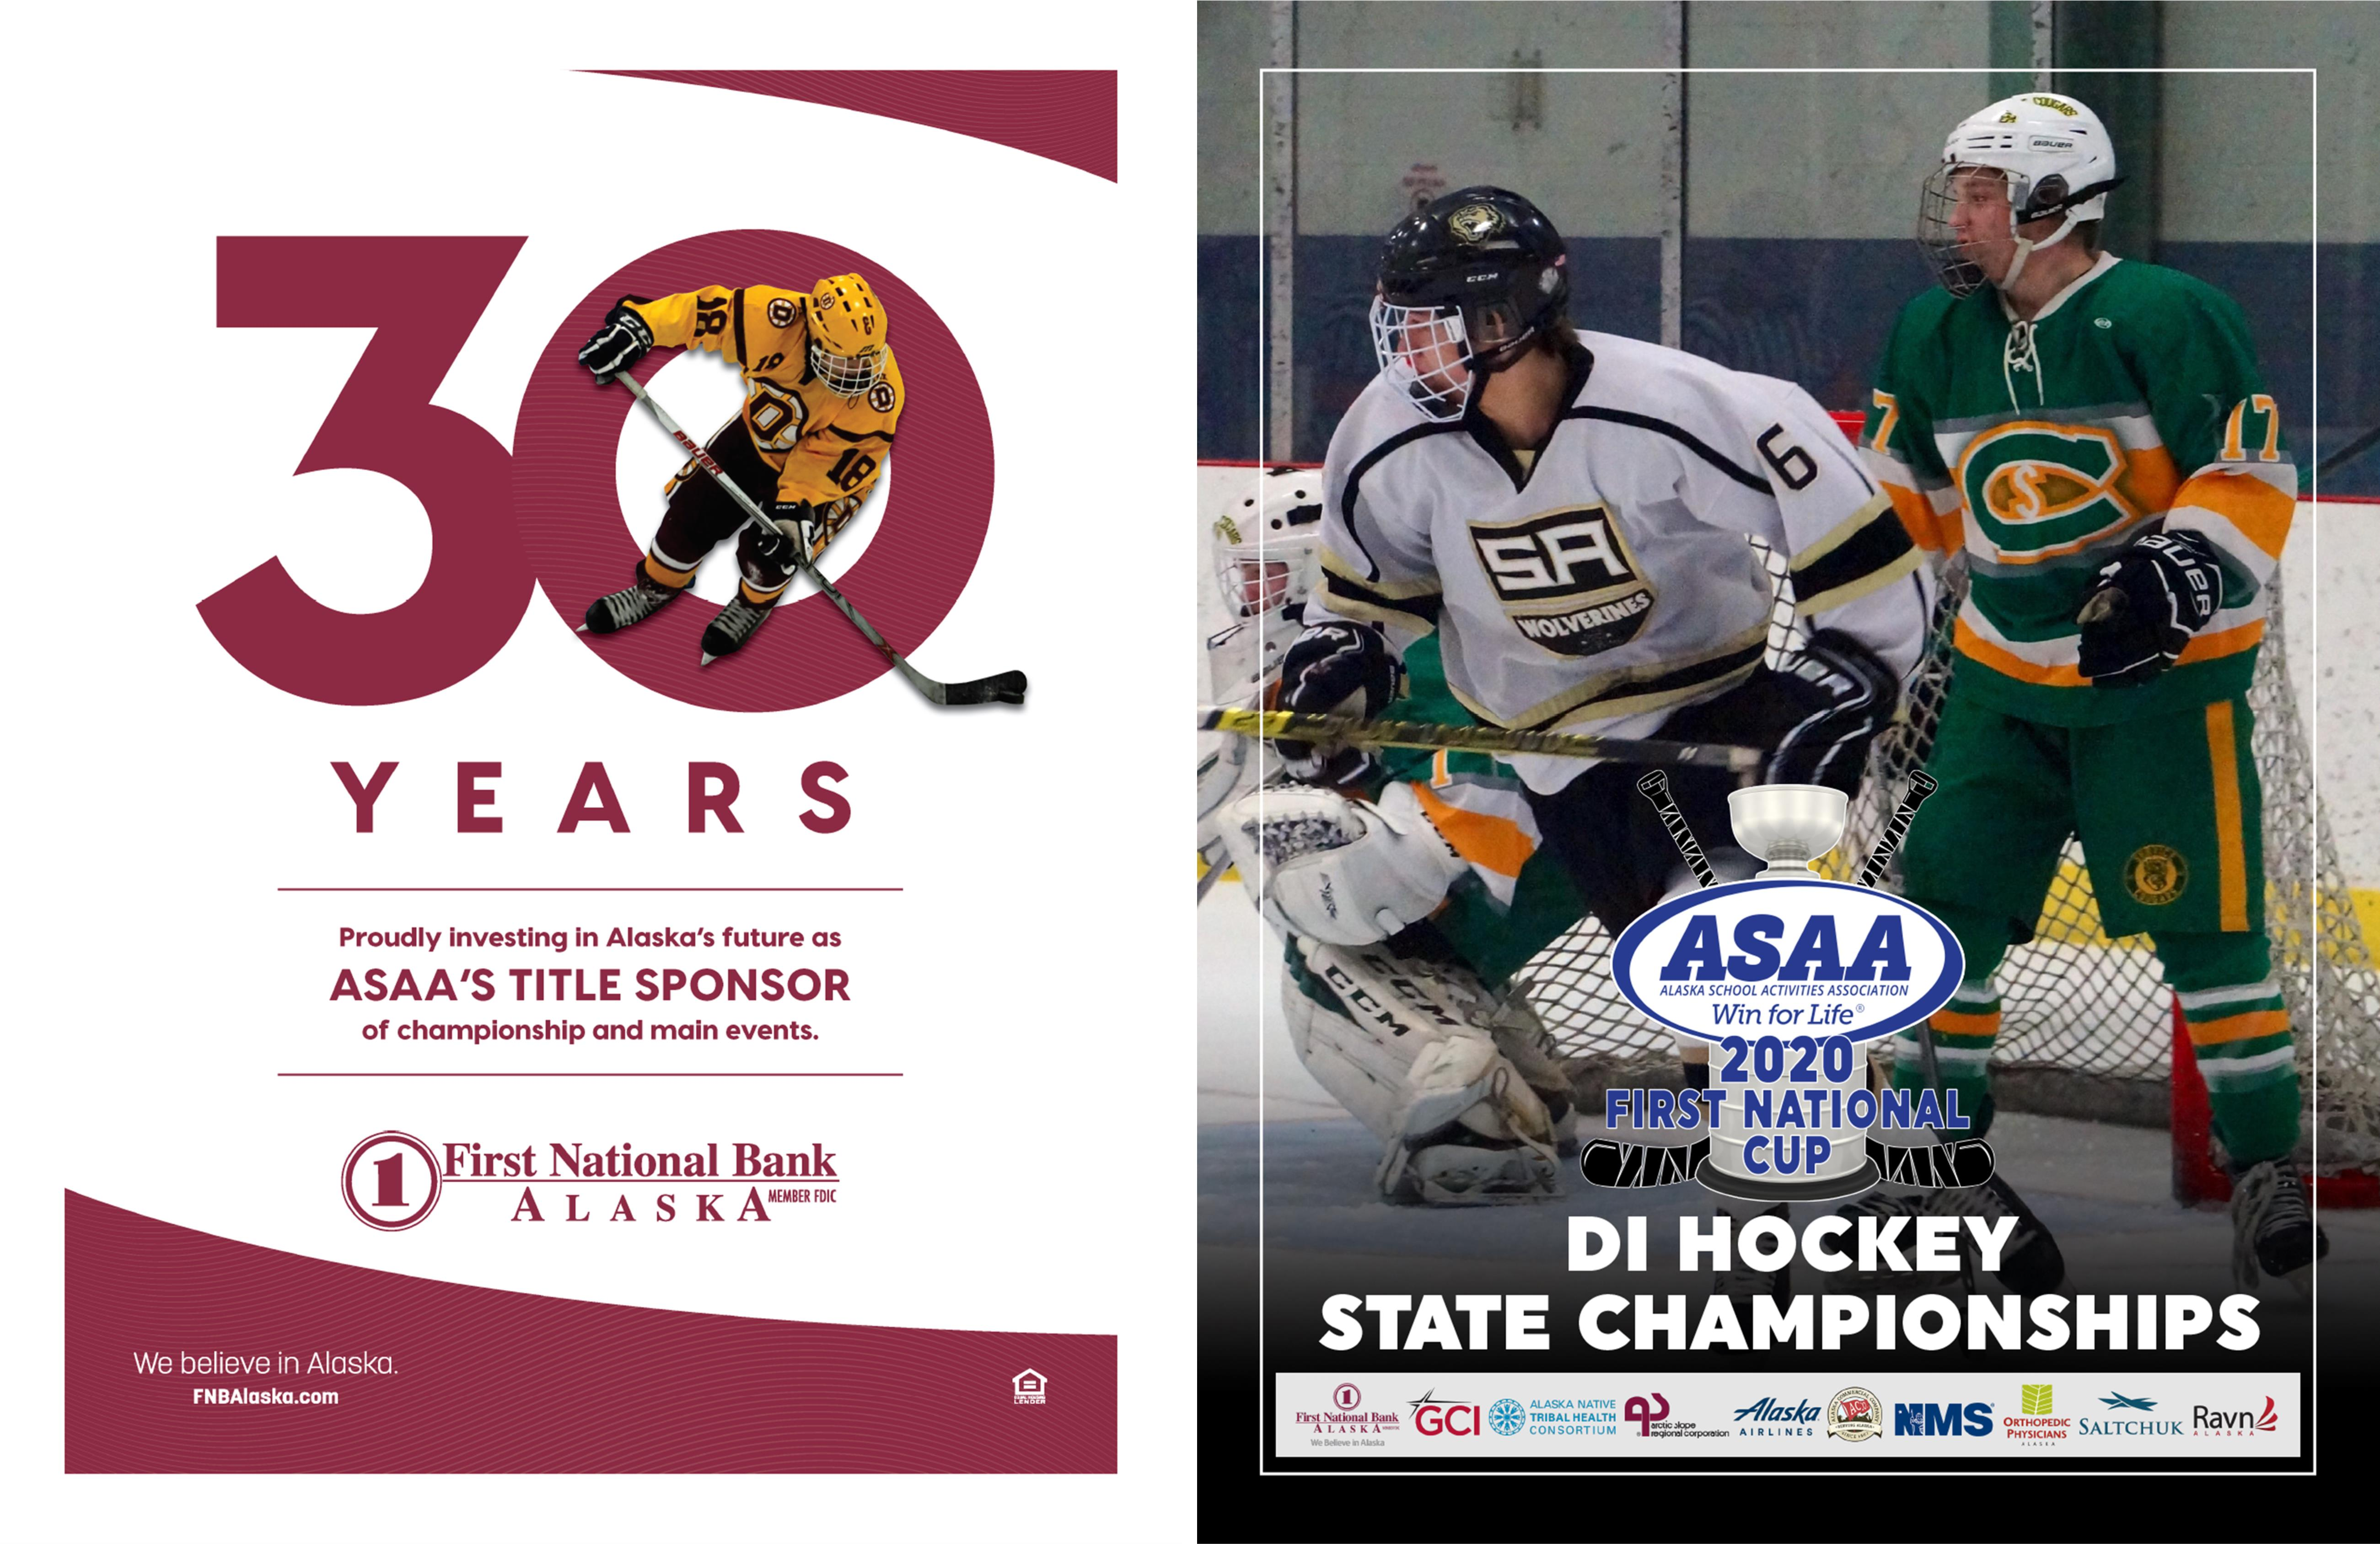 2020 First National Cup Division I Hockey State Championship Program cover image